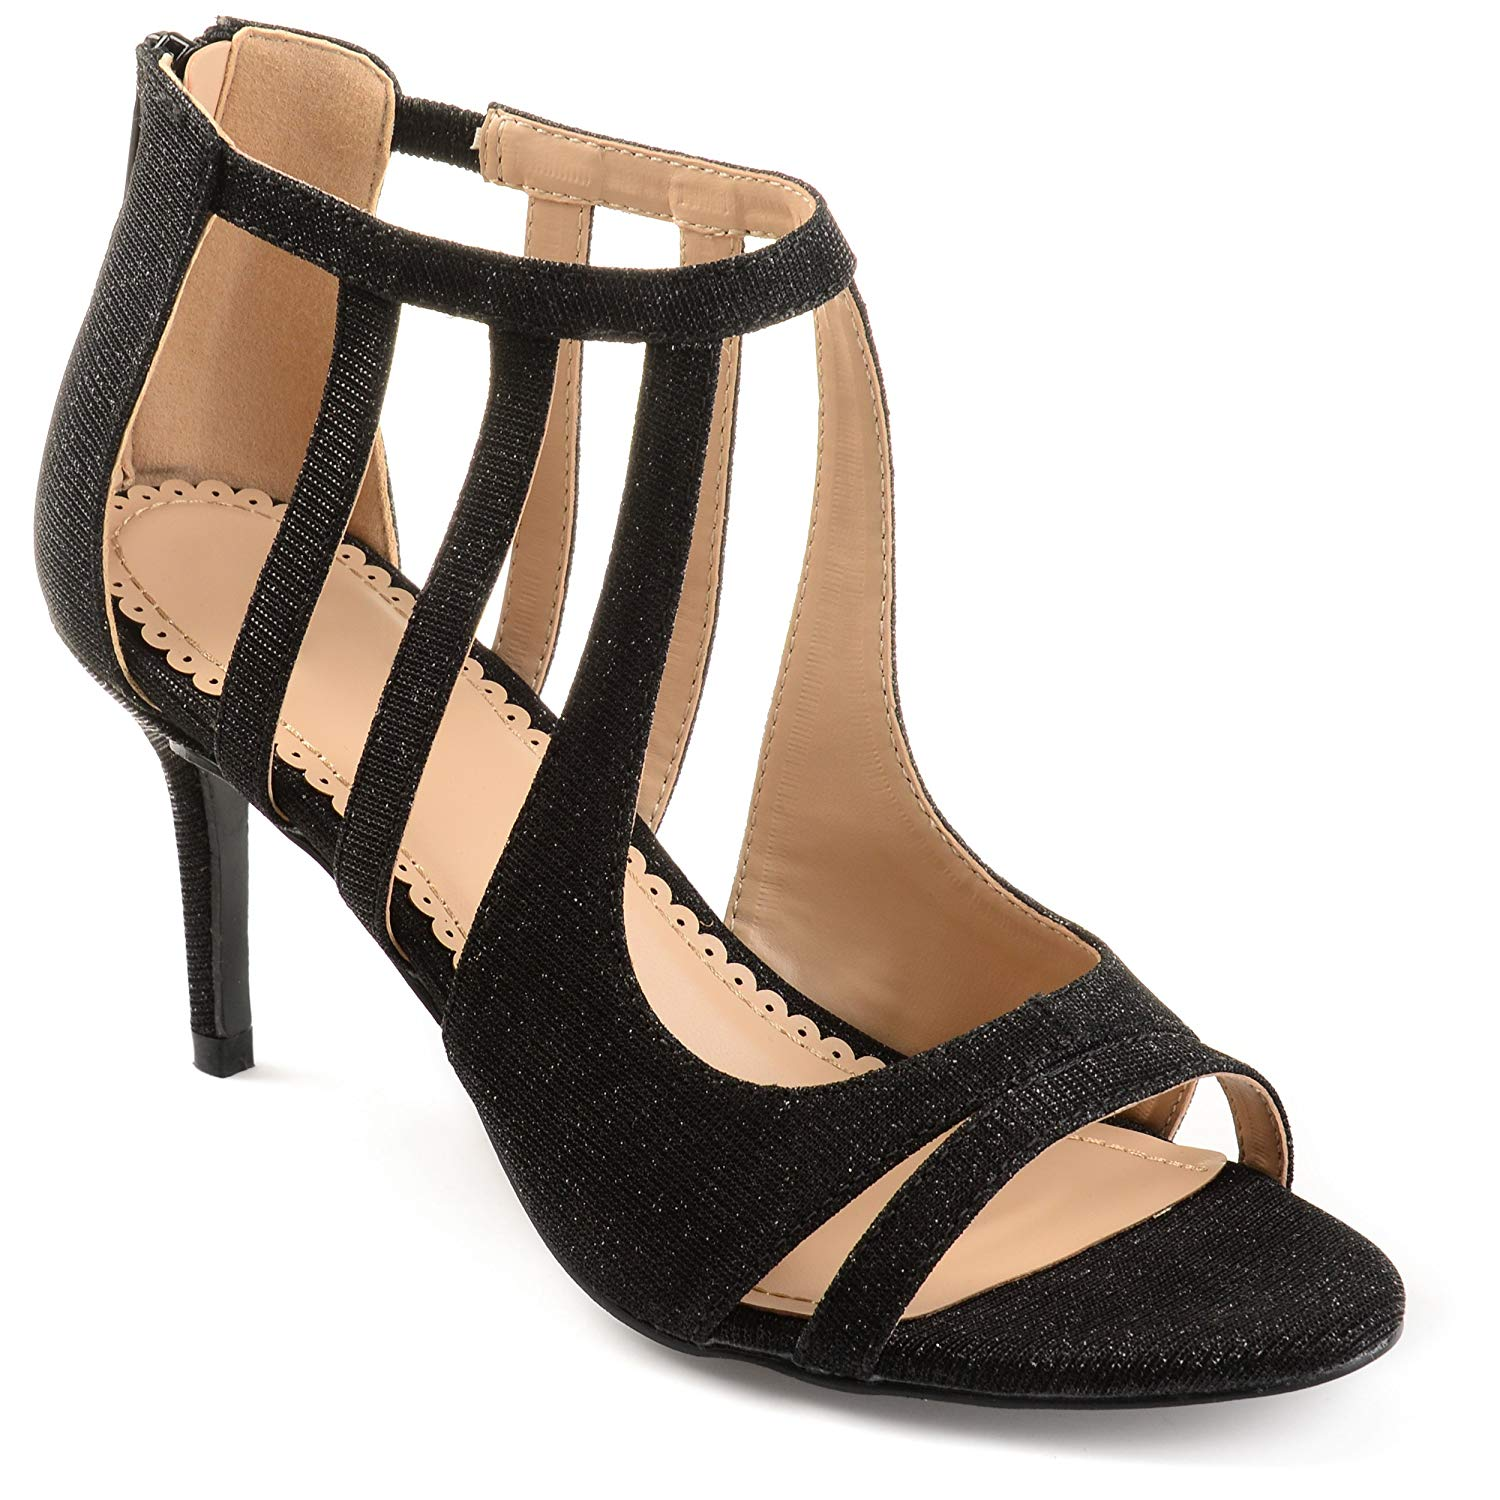 a46b9fbf6885 Get Quotations · Journee Collection Womens Cut-out Open-toe Glitter Caged  Heels